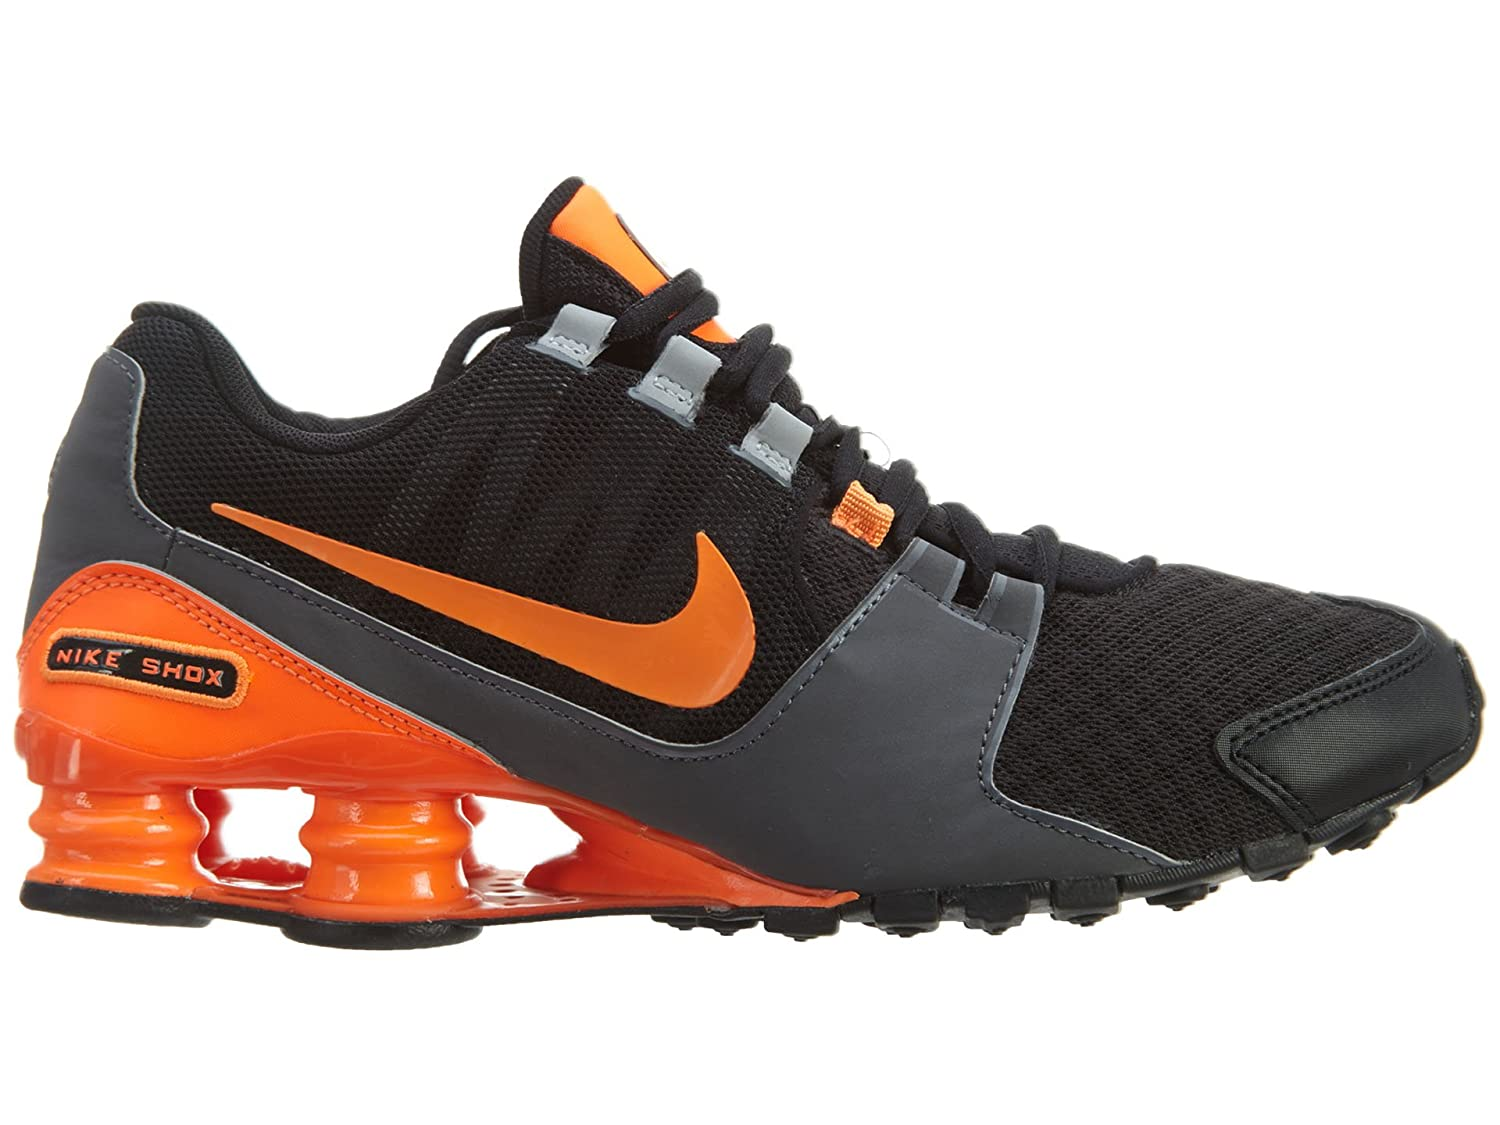 reputable site d8679 d6637 ... Nike Men s Shox Avenue Black Total Orange Wolf Grey Synthetic Running  Shoes 8 M US ...